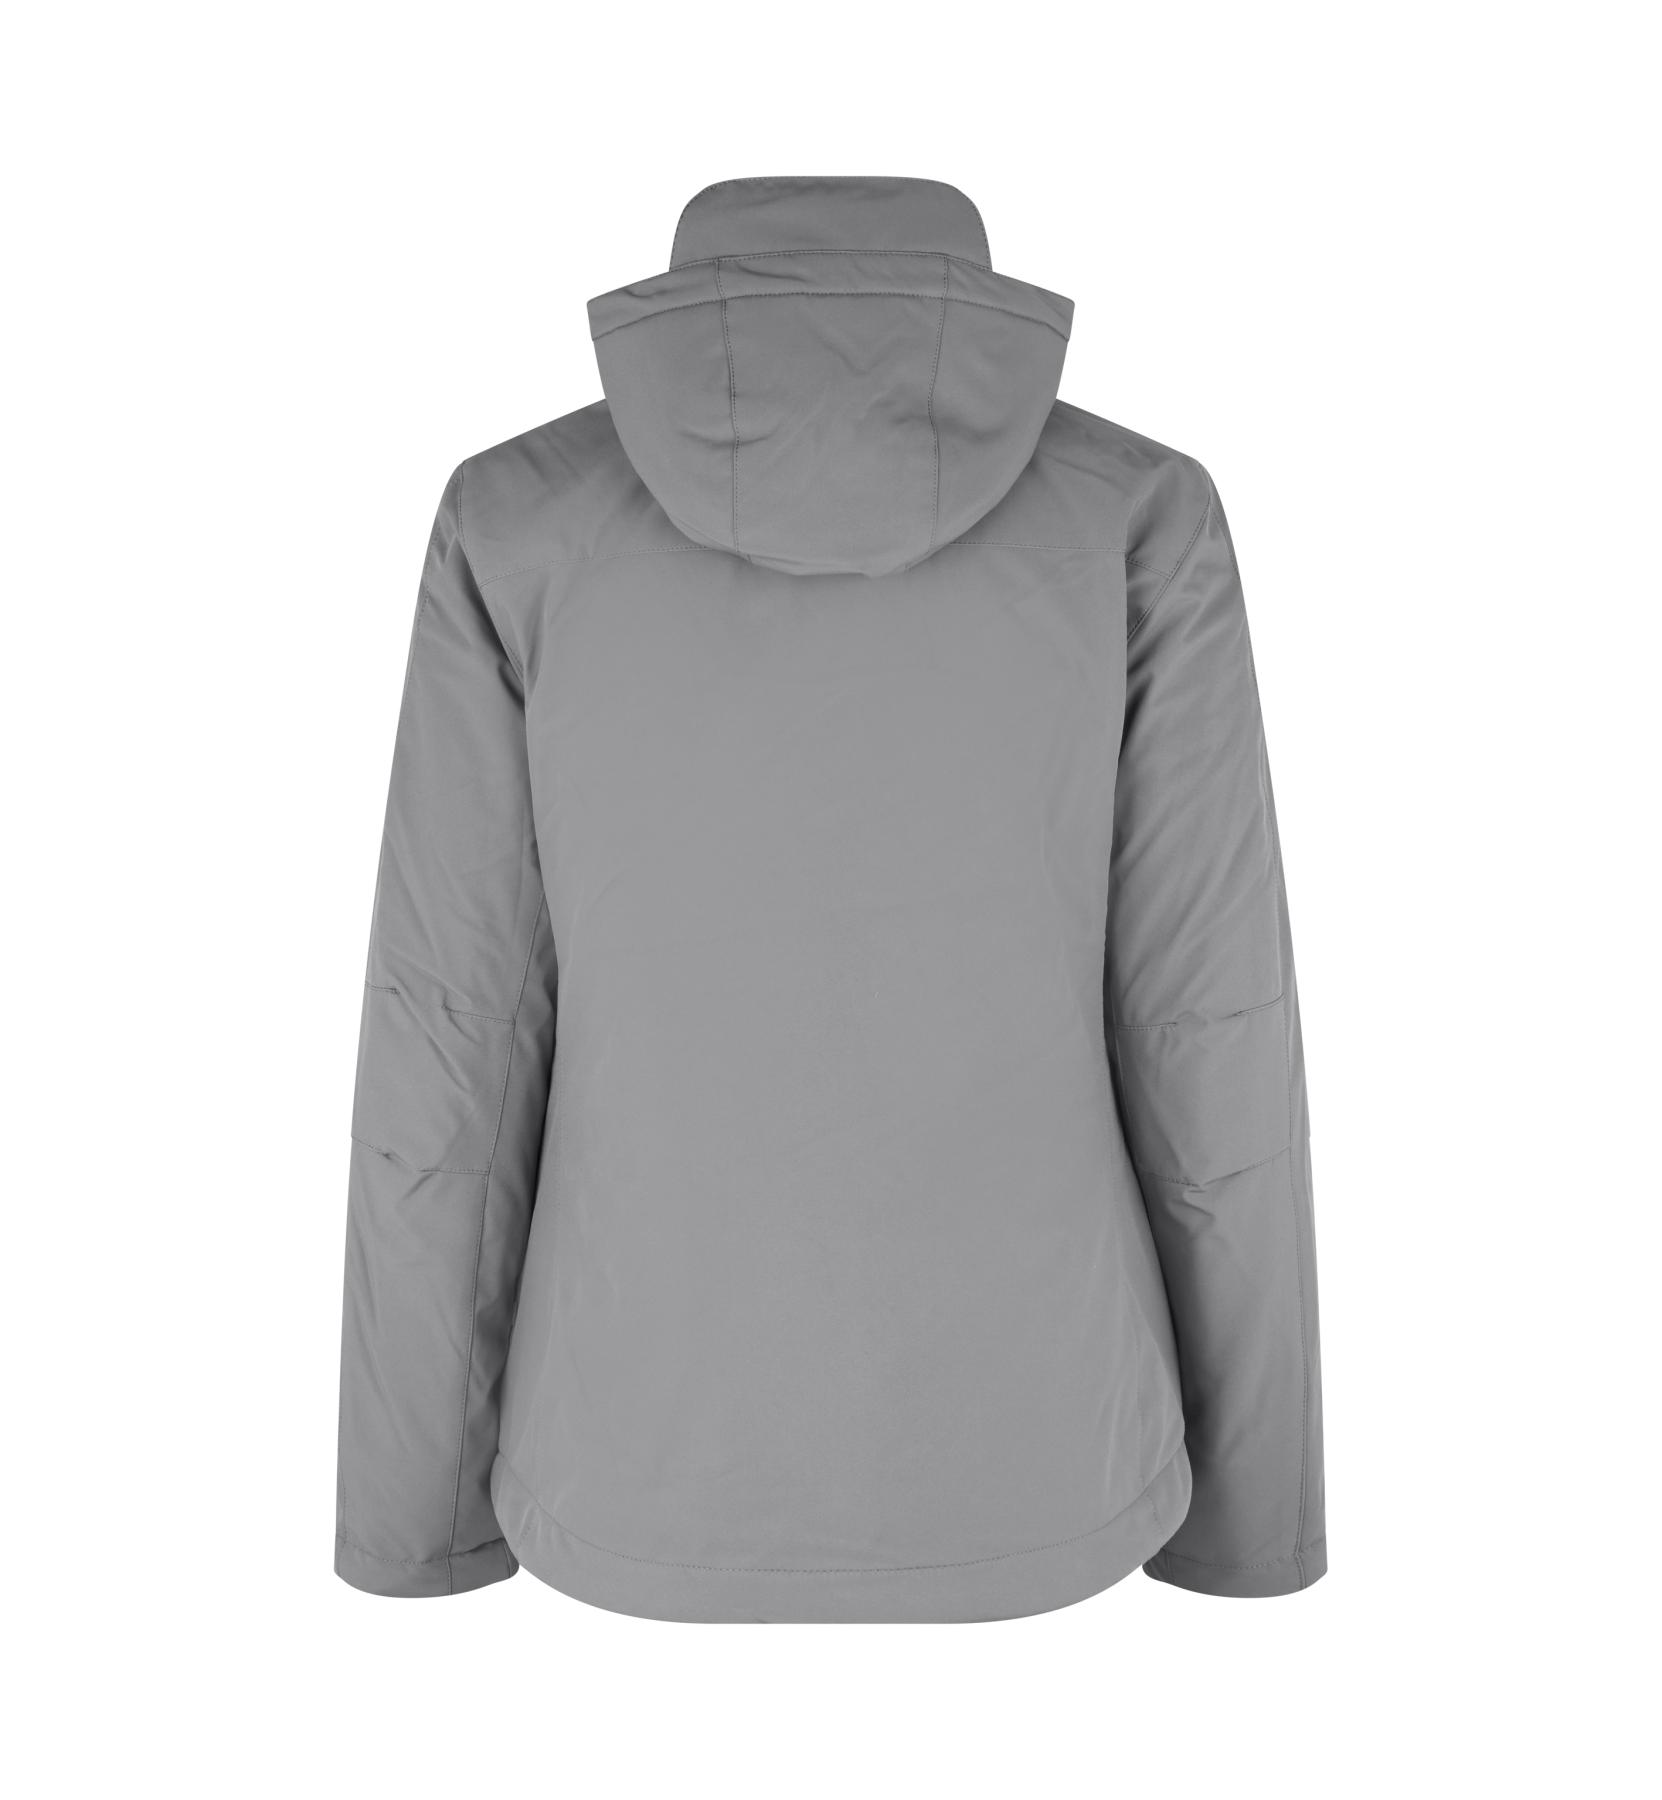 34cc14a923d Ladies' winter soft shell jacket